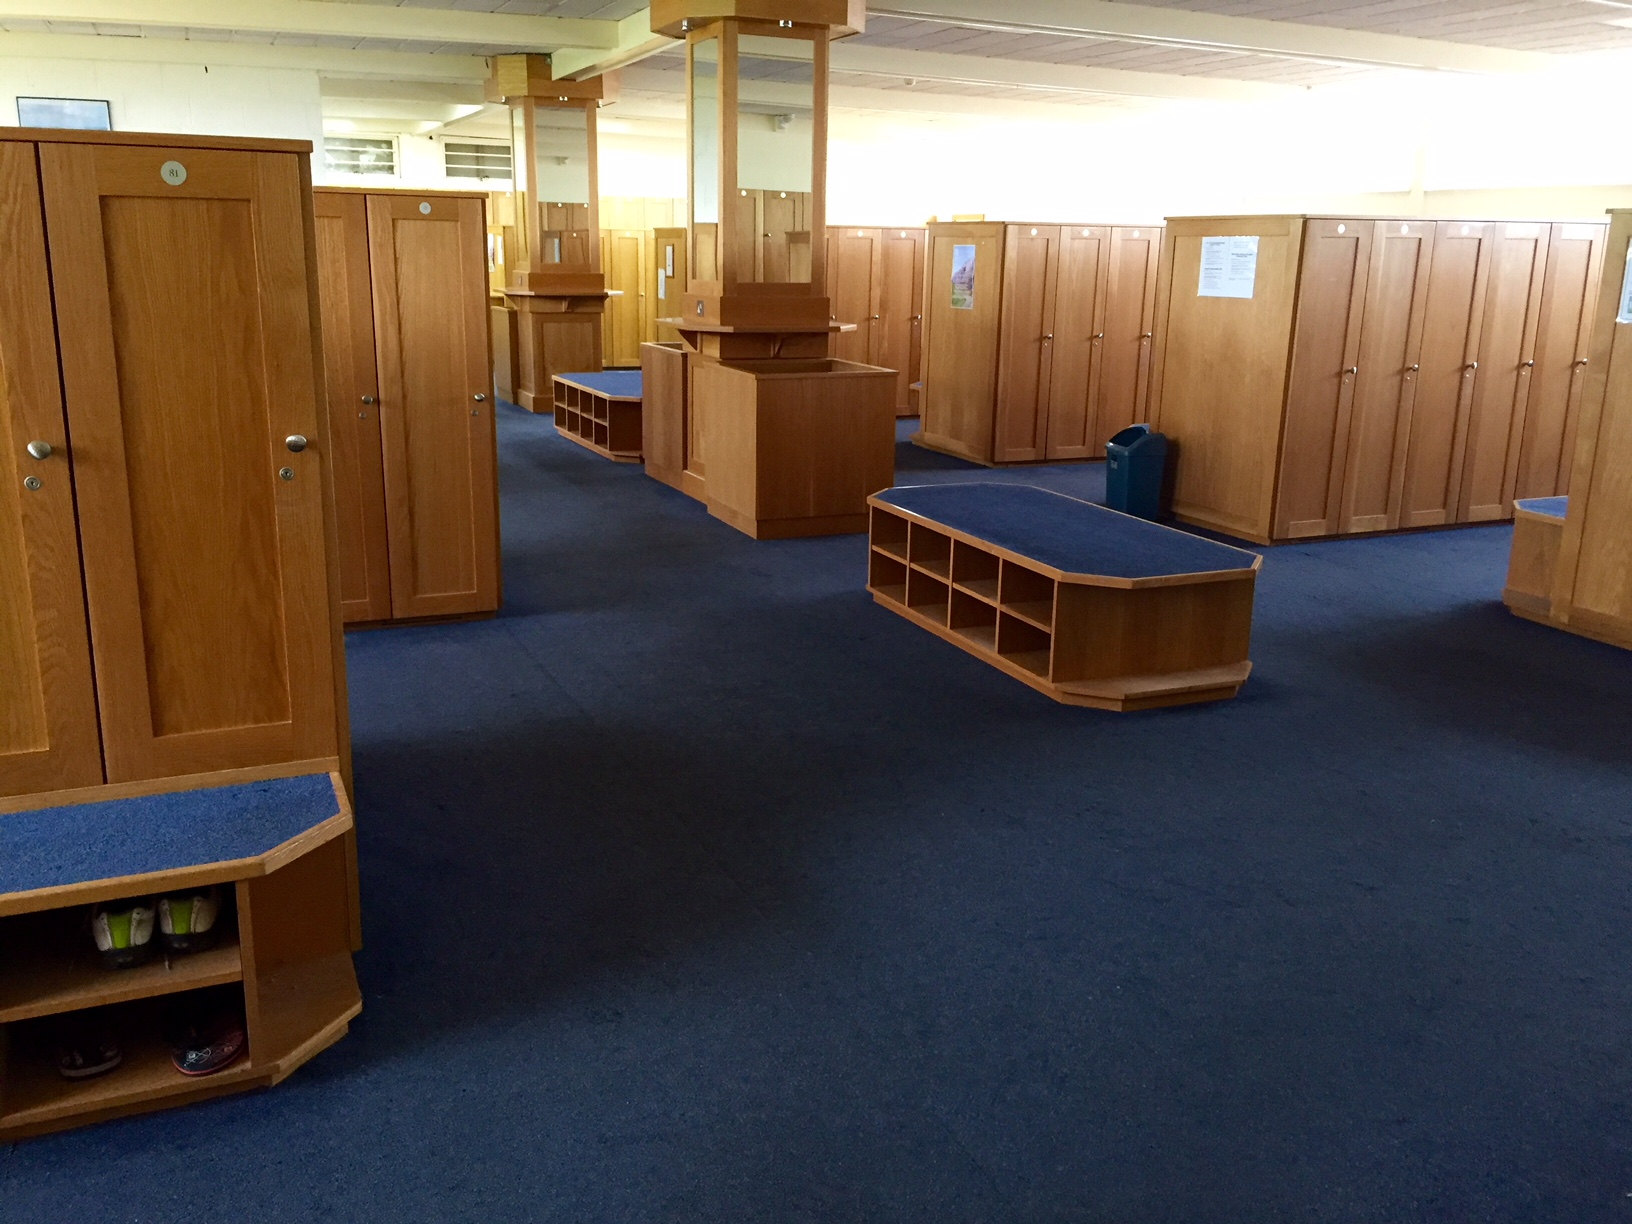 Howth Golf club, Dublin, Ireland, Lockeroom